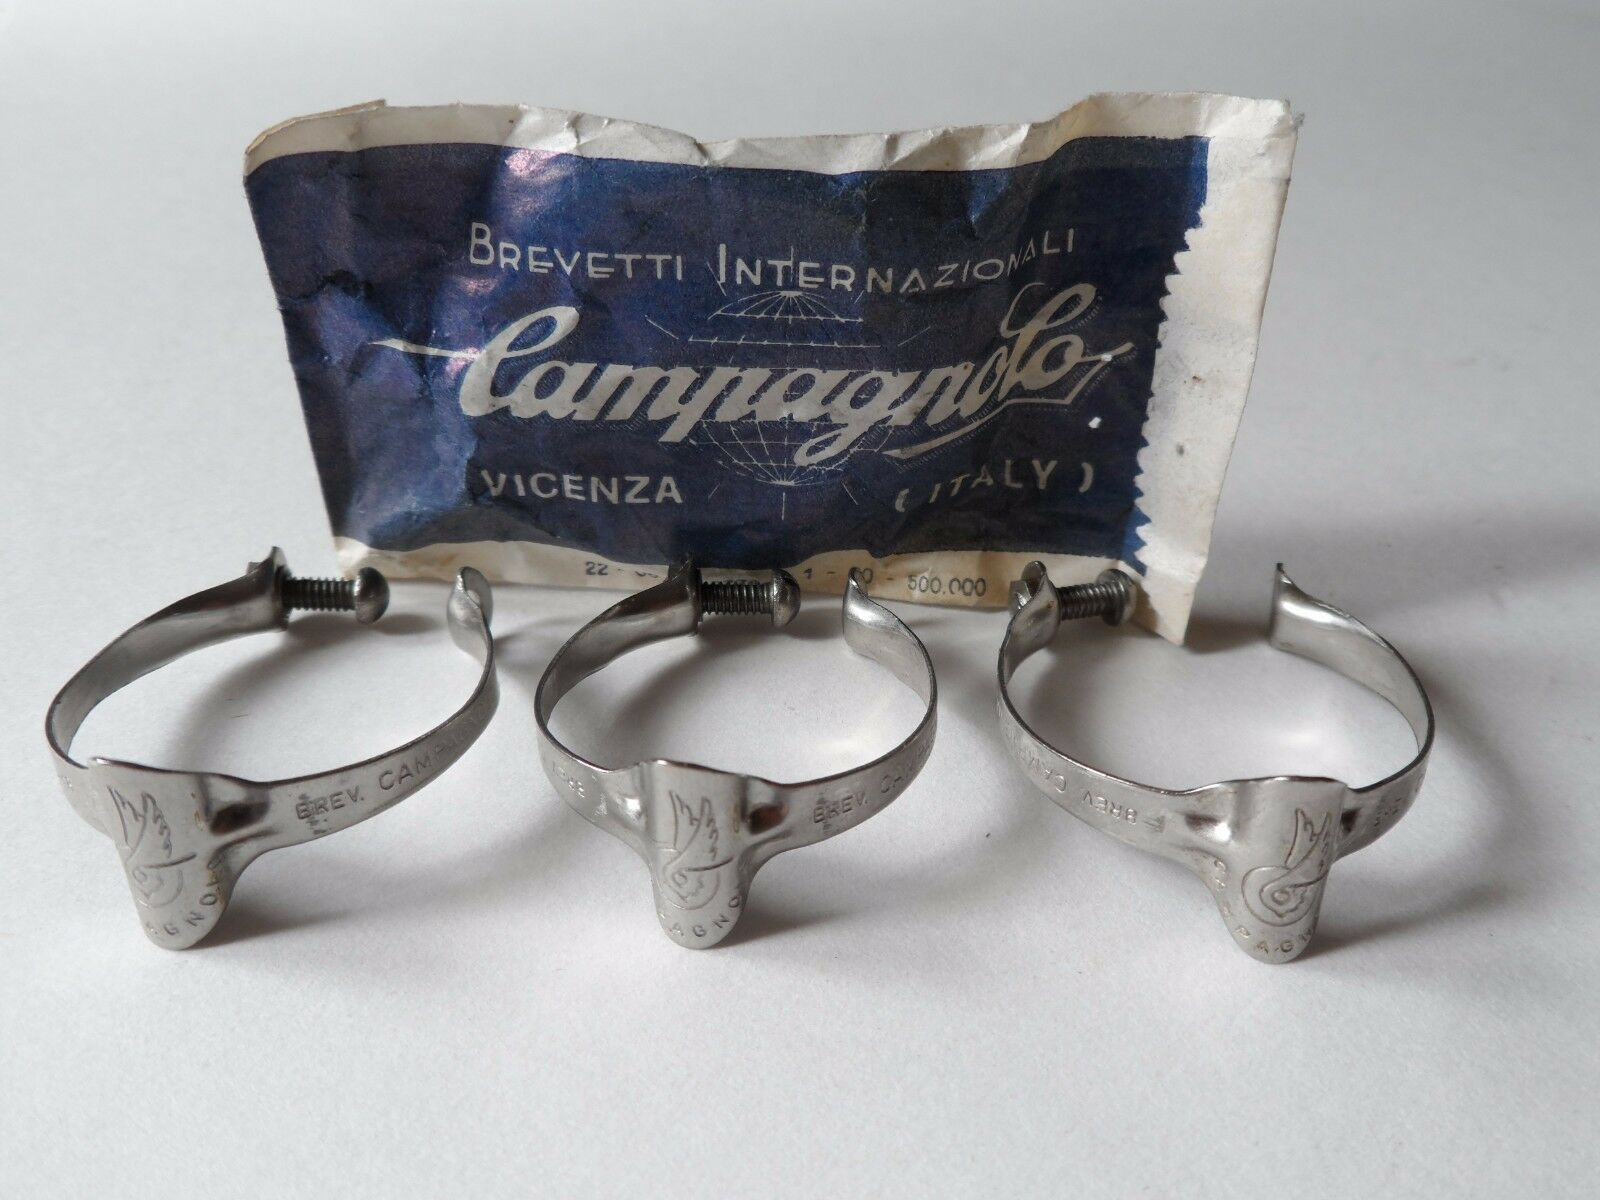 NOS Vintage 1970s Campagnolo Record top tube brake cable clips  (set of 3)  100% genuine counter guarantee